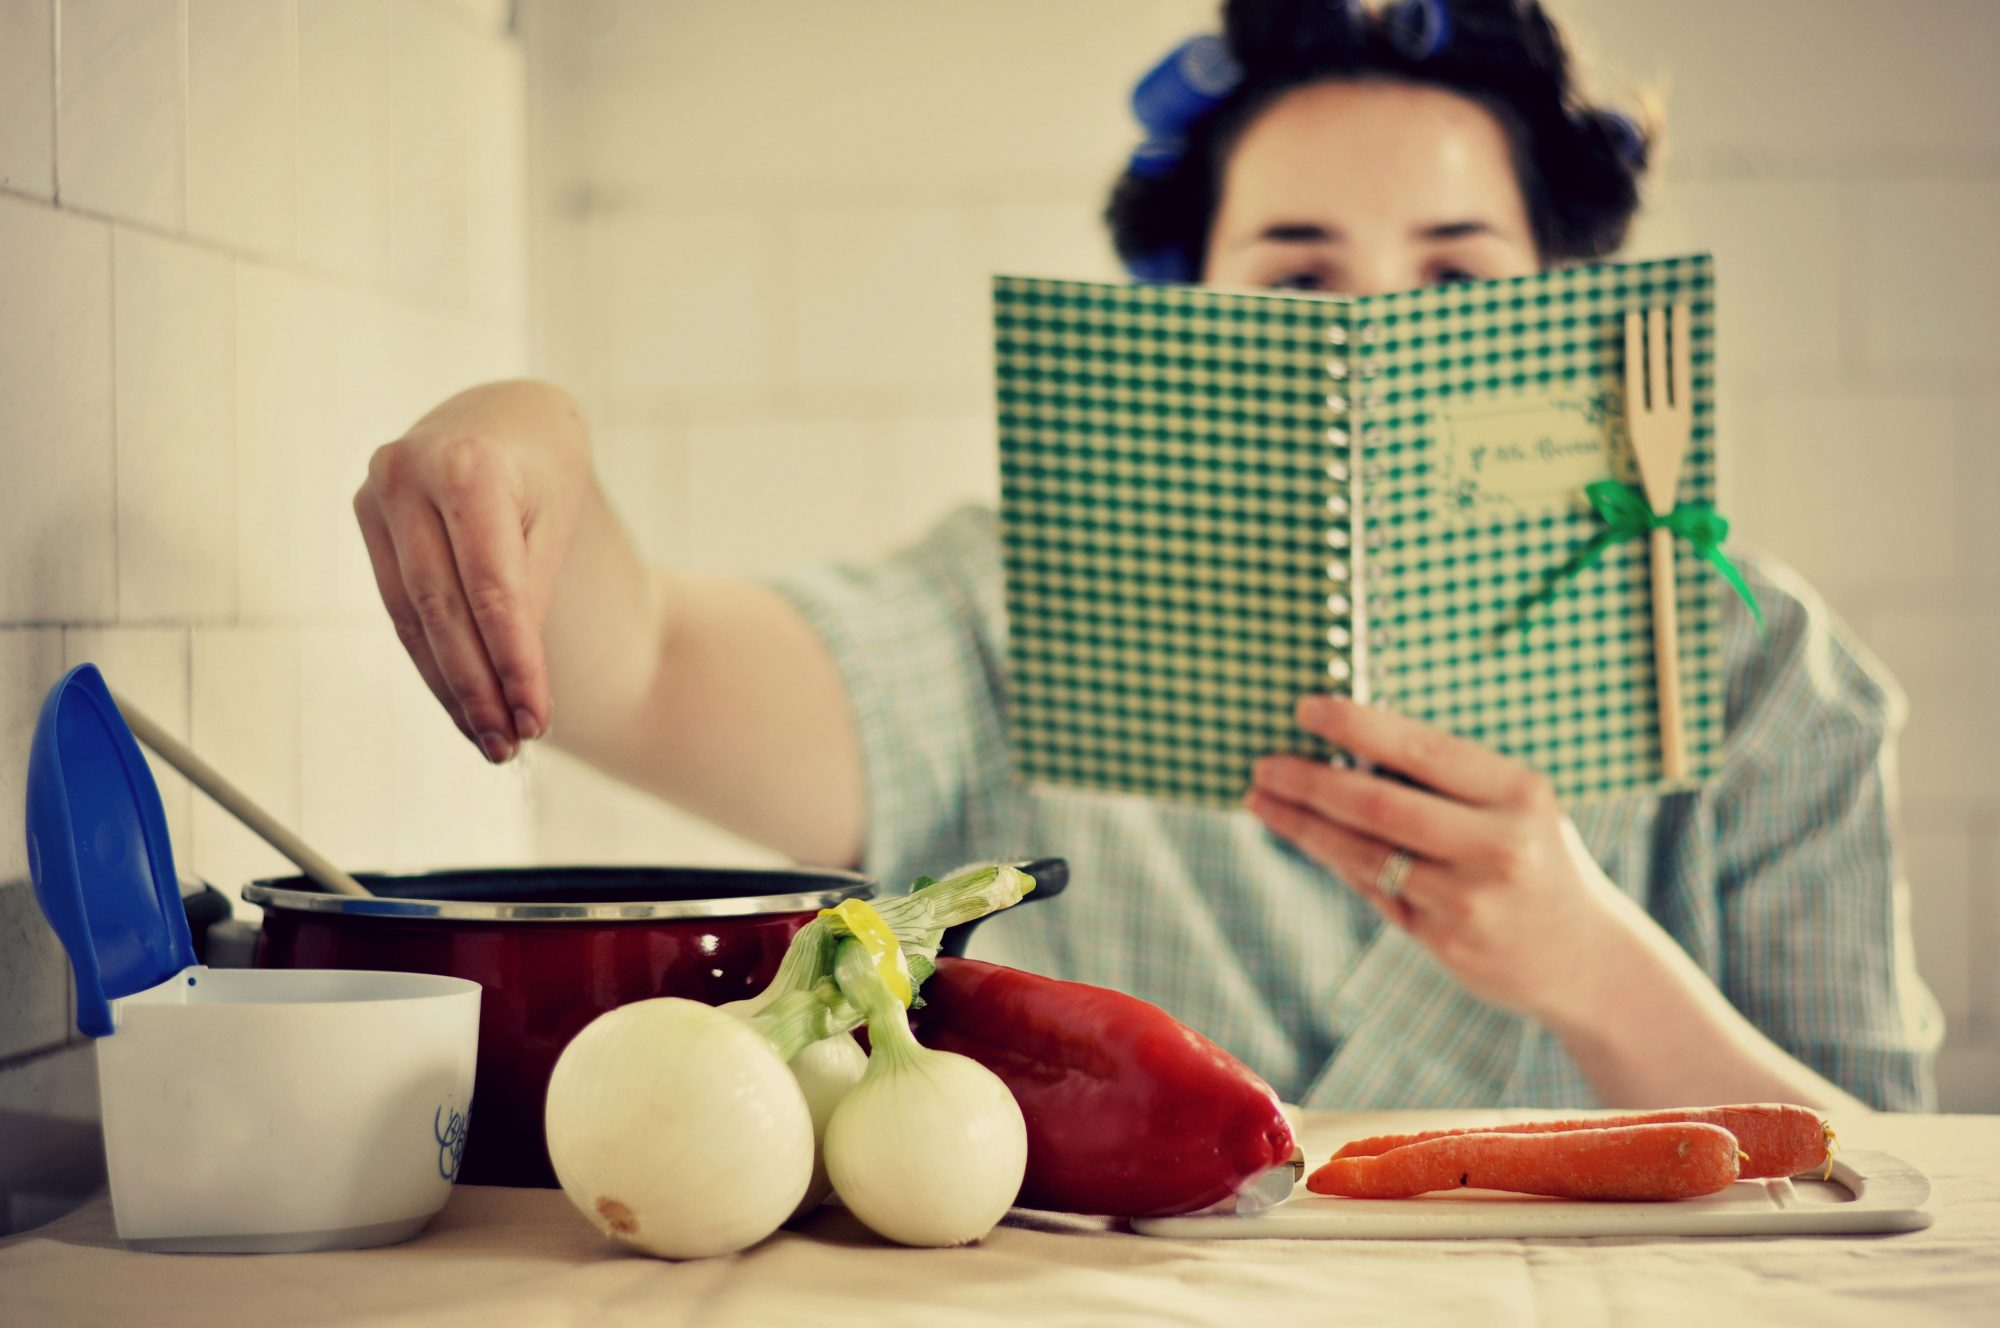 061520_Getty Retro Woman with Cookbook